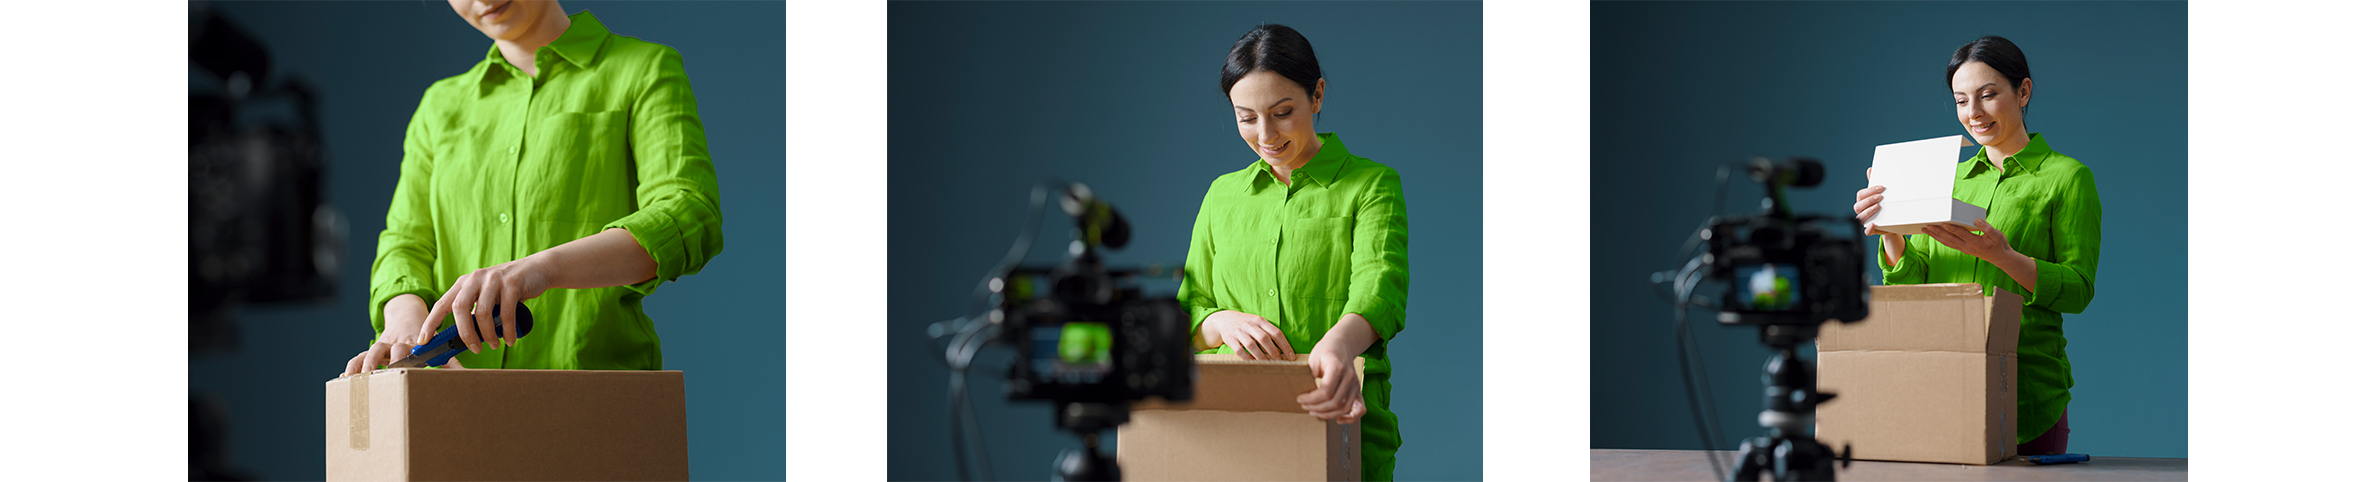 A woman curiously filming an unboxing video of her recent online purchase order   Positieve customer experience